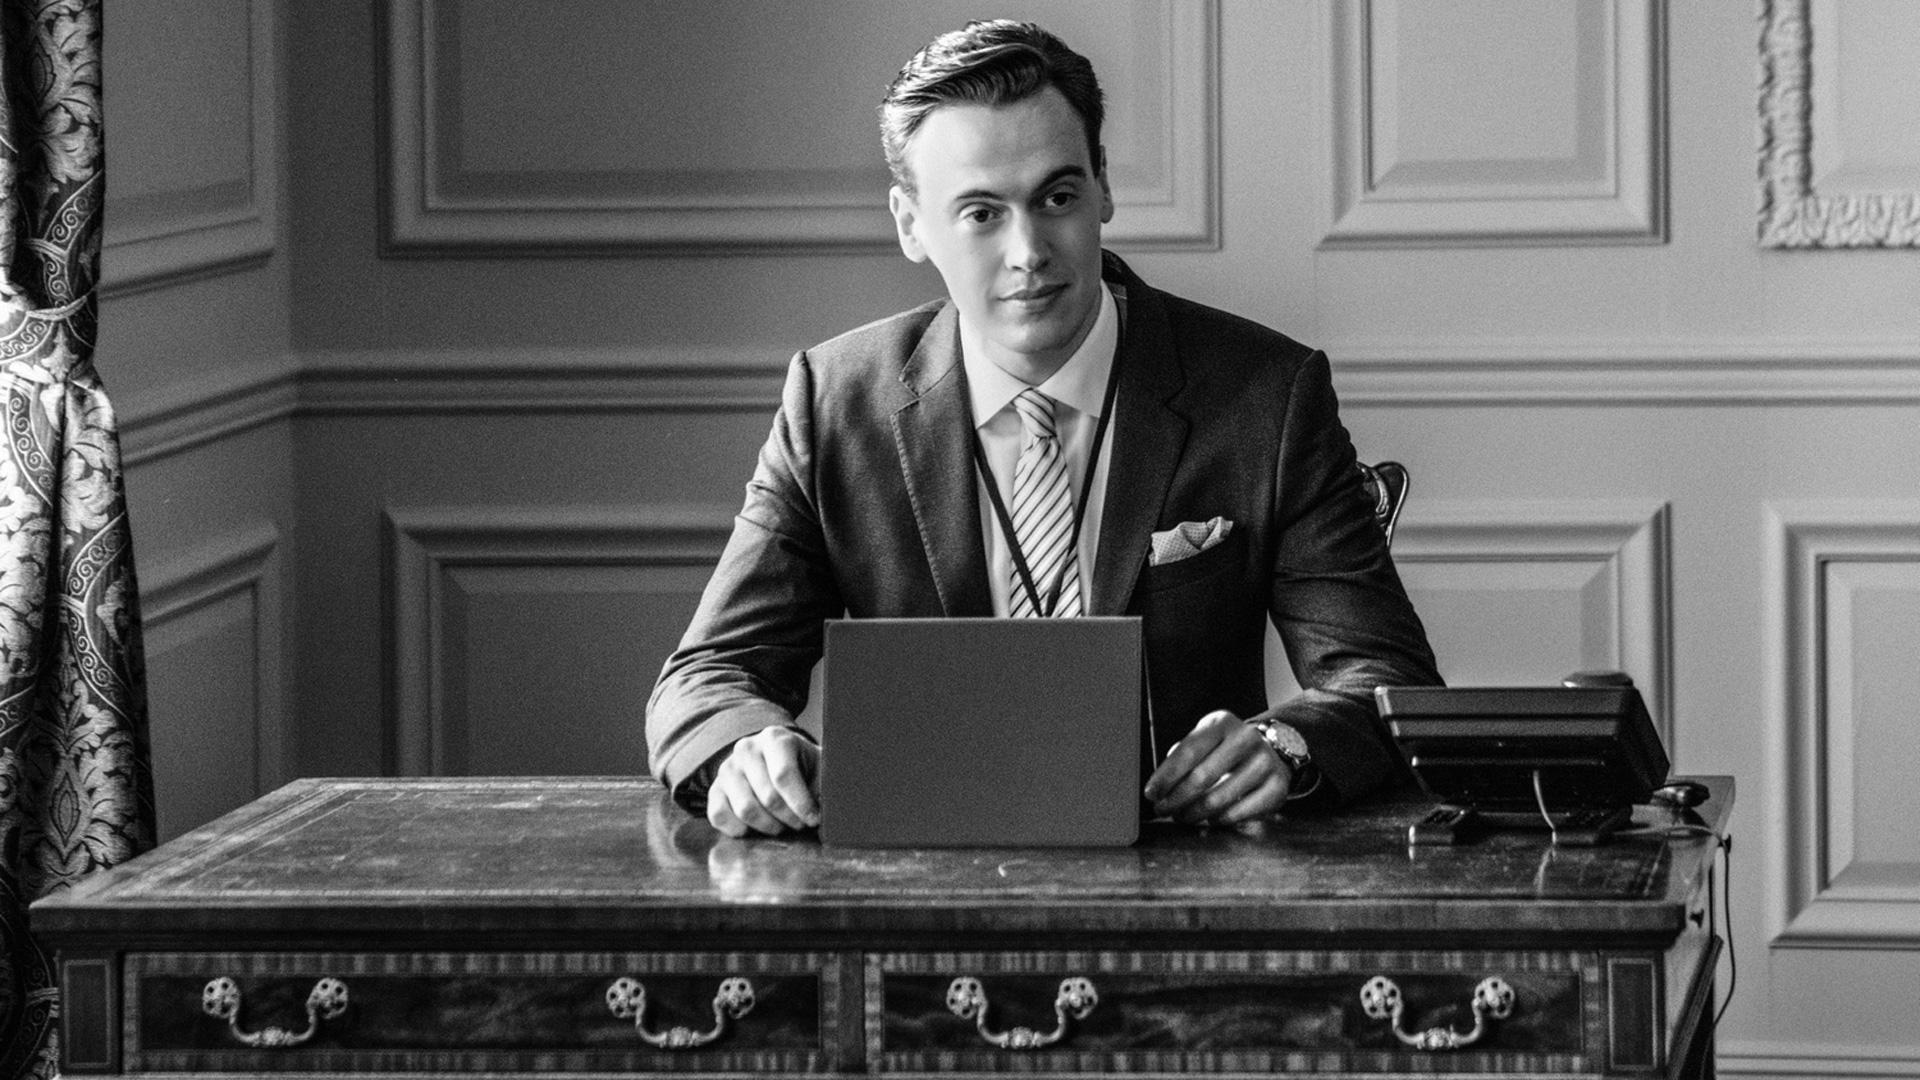 This sophisticated snapshot shows Erich Bergen as Blake Moran in black and white.